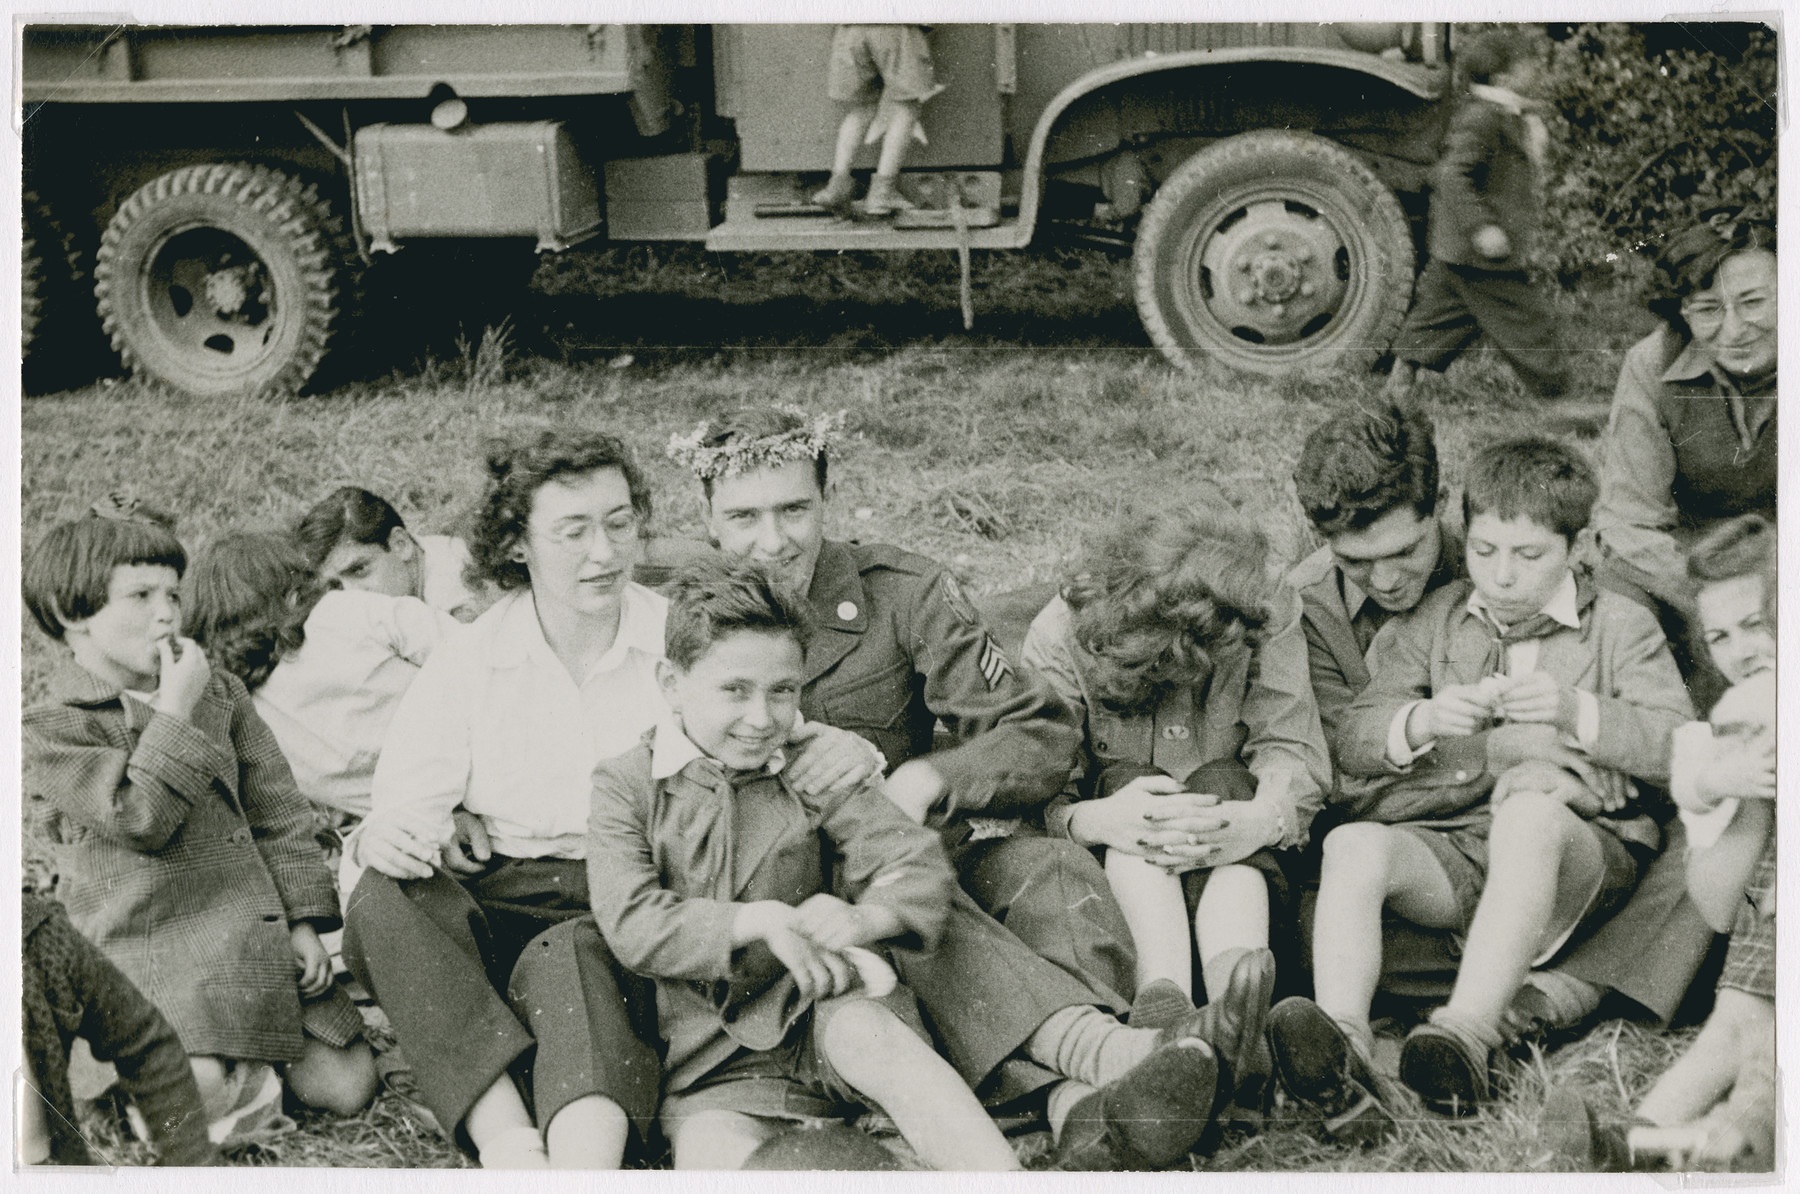 Members of the Frankfurt GI Council go on an excursion with children [probably from the Lindenfels children's home].  David Marcus is seated on the right, looking down.